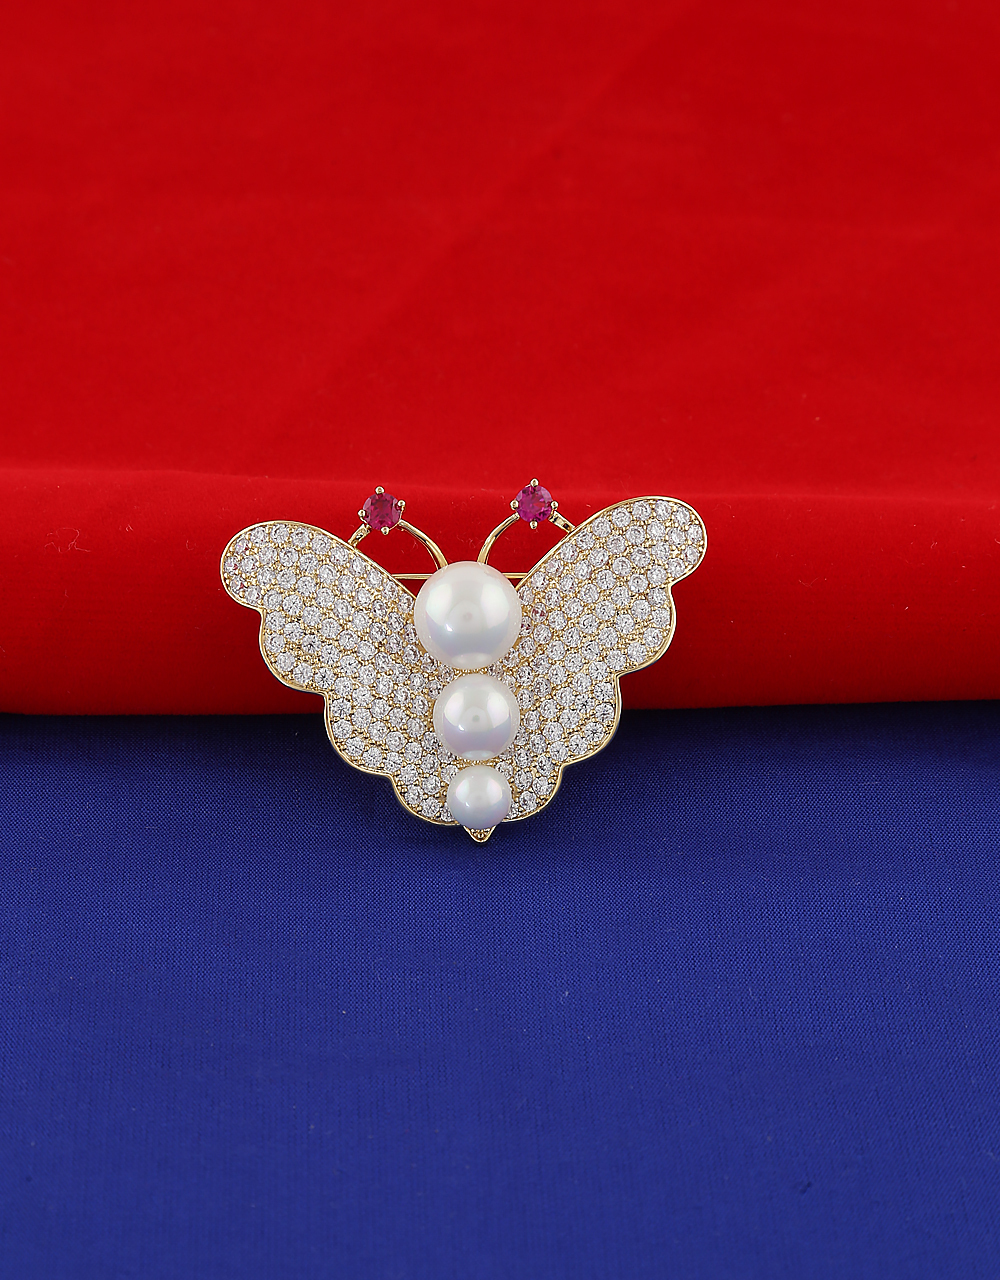 Gold Finish Butterfly Design Brooch